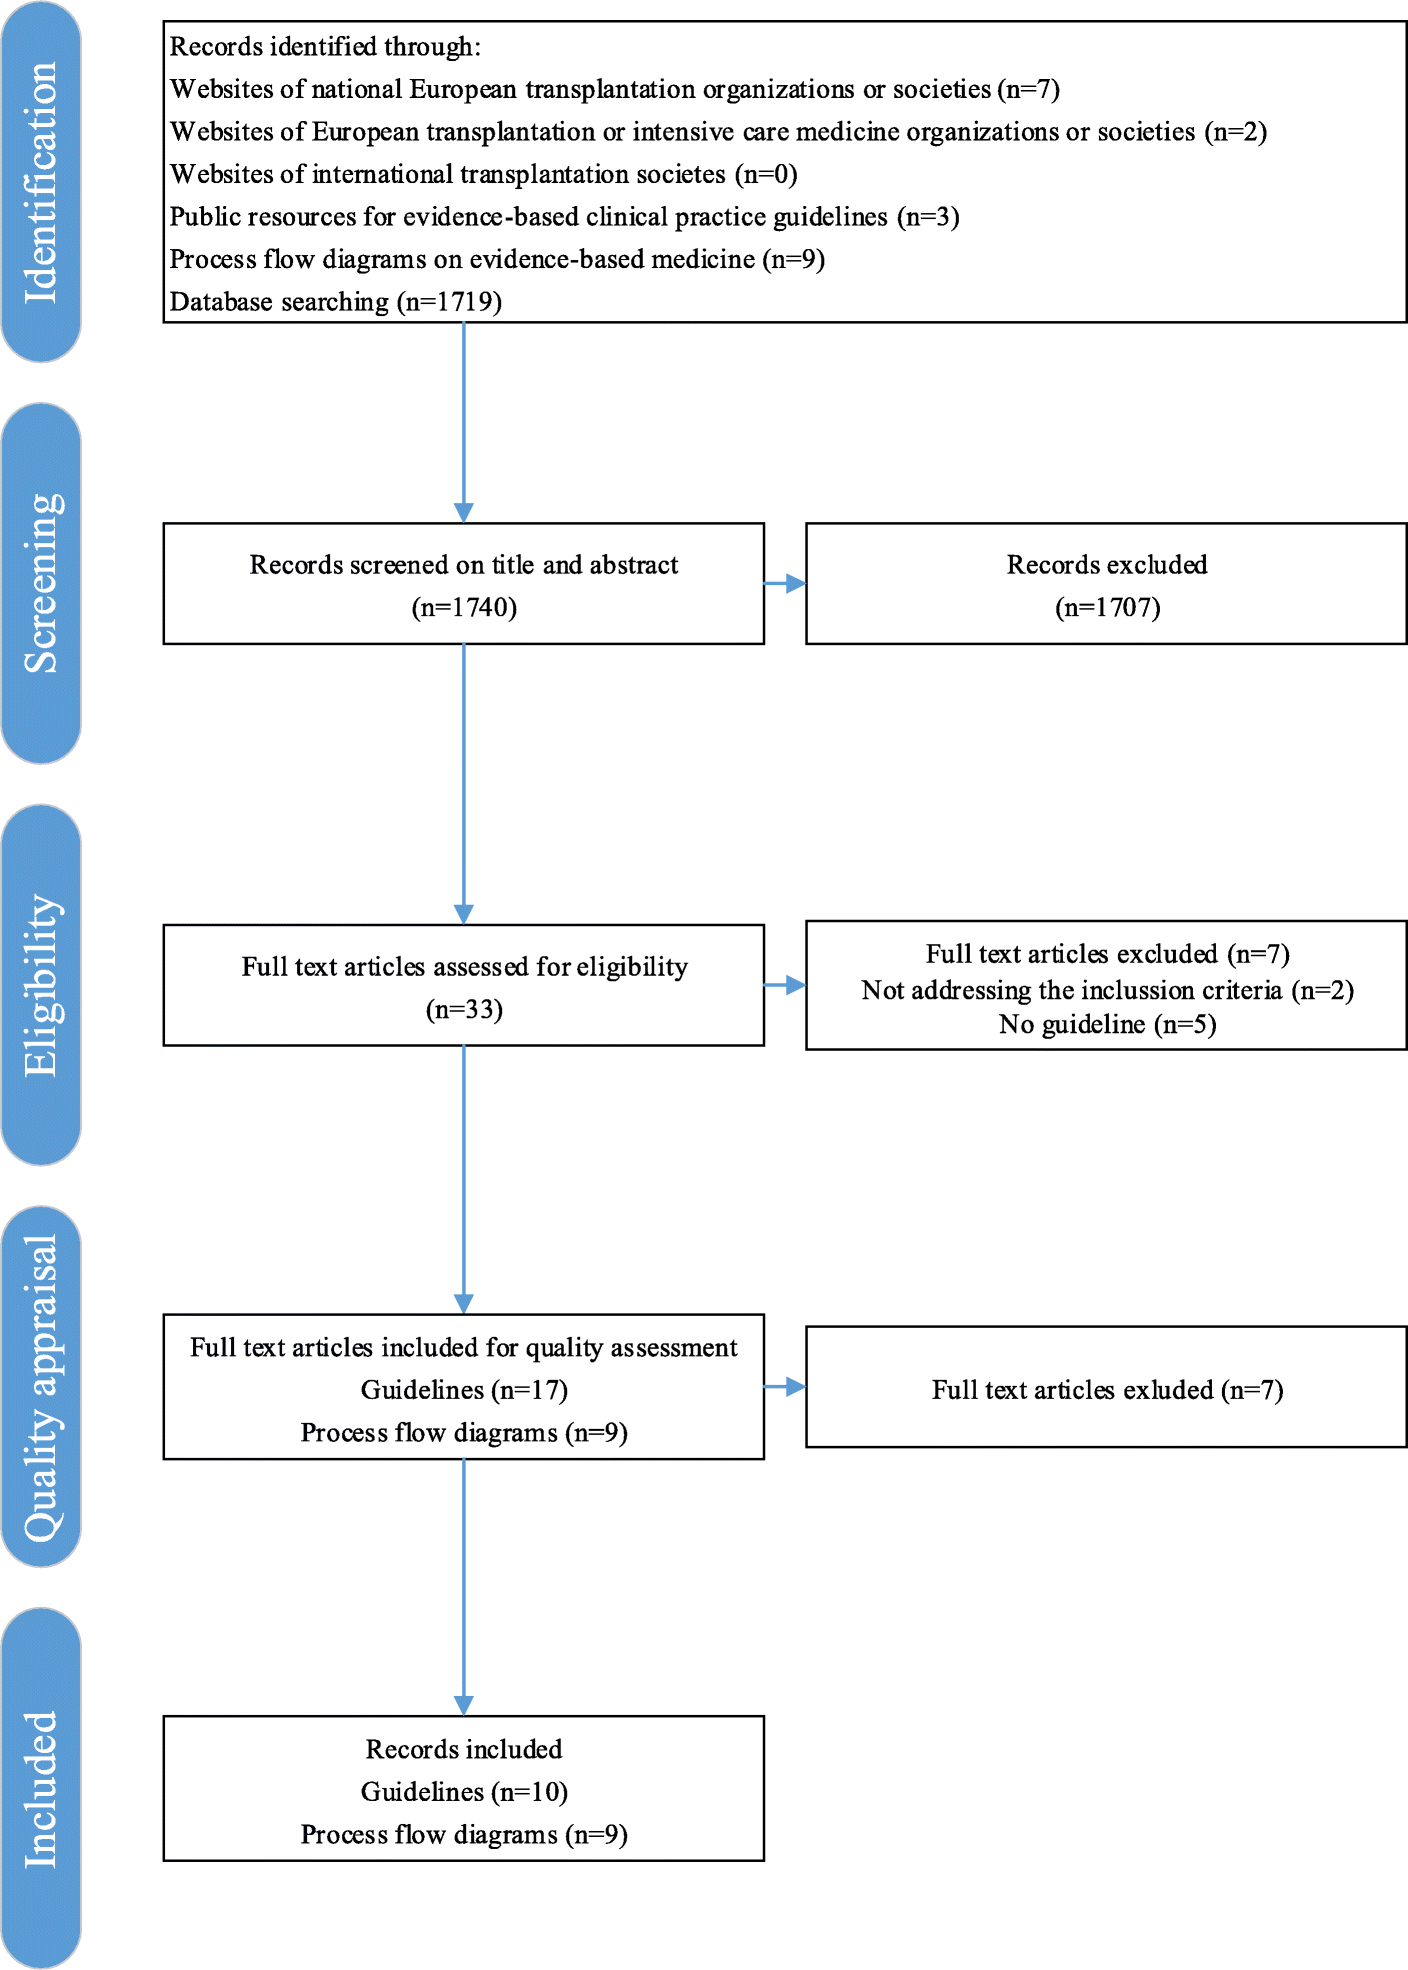 Development Of Key Interventions And Quality Indicators For The Process Flow Diagram Images Fig 1 Selection Guidelines Diagrams